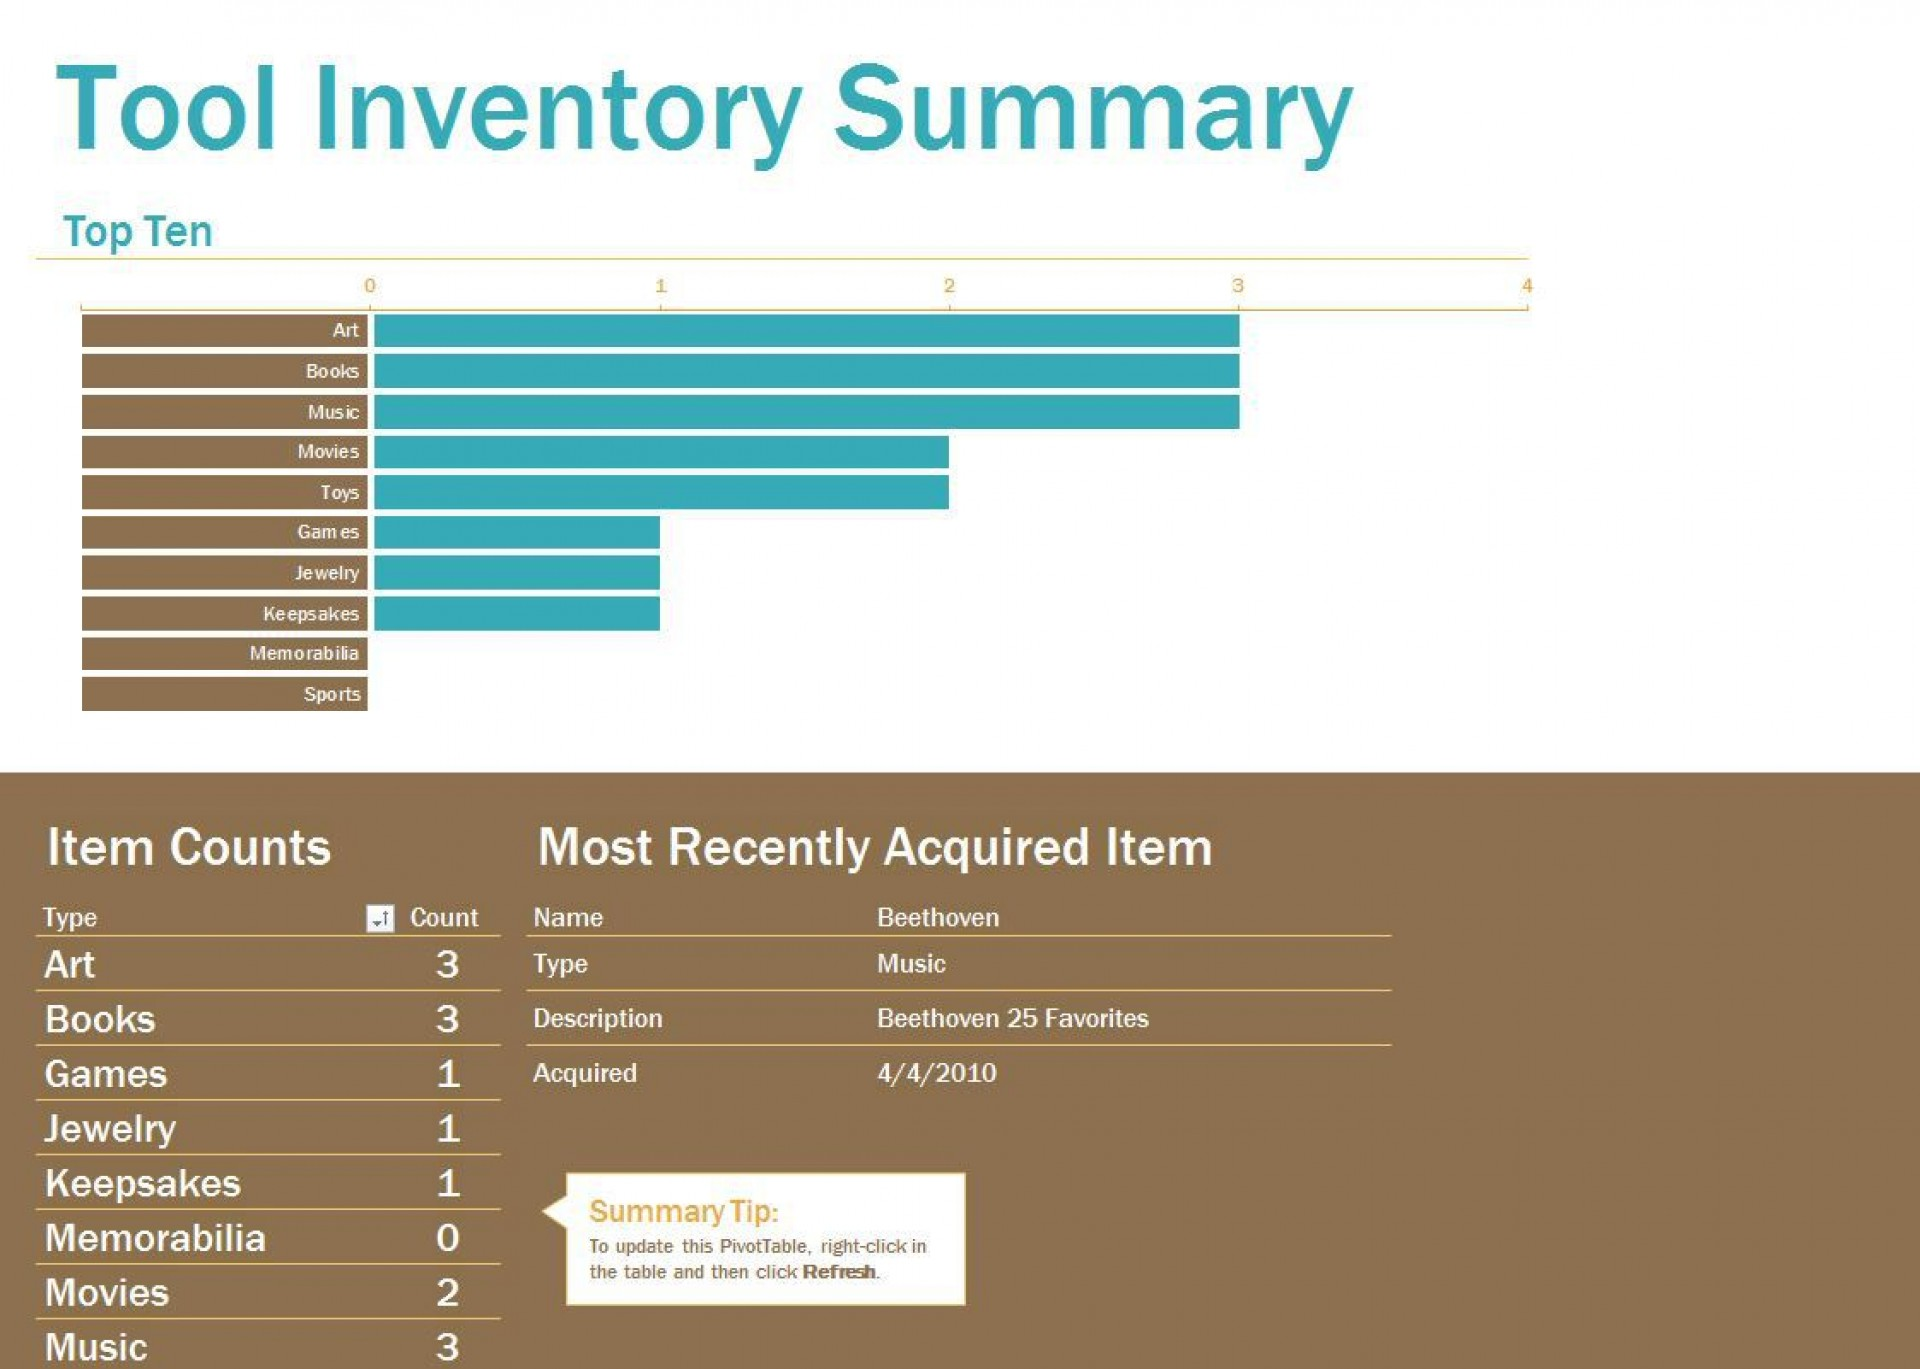 008 Incredible Free Tool Inventory Spreadsheet Template Design 1920